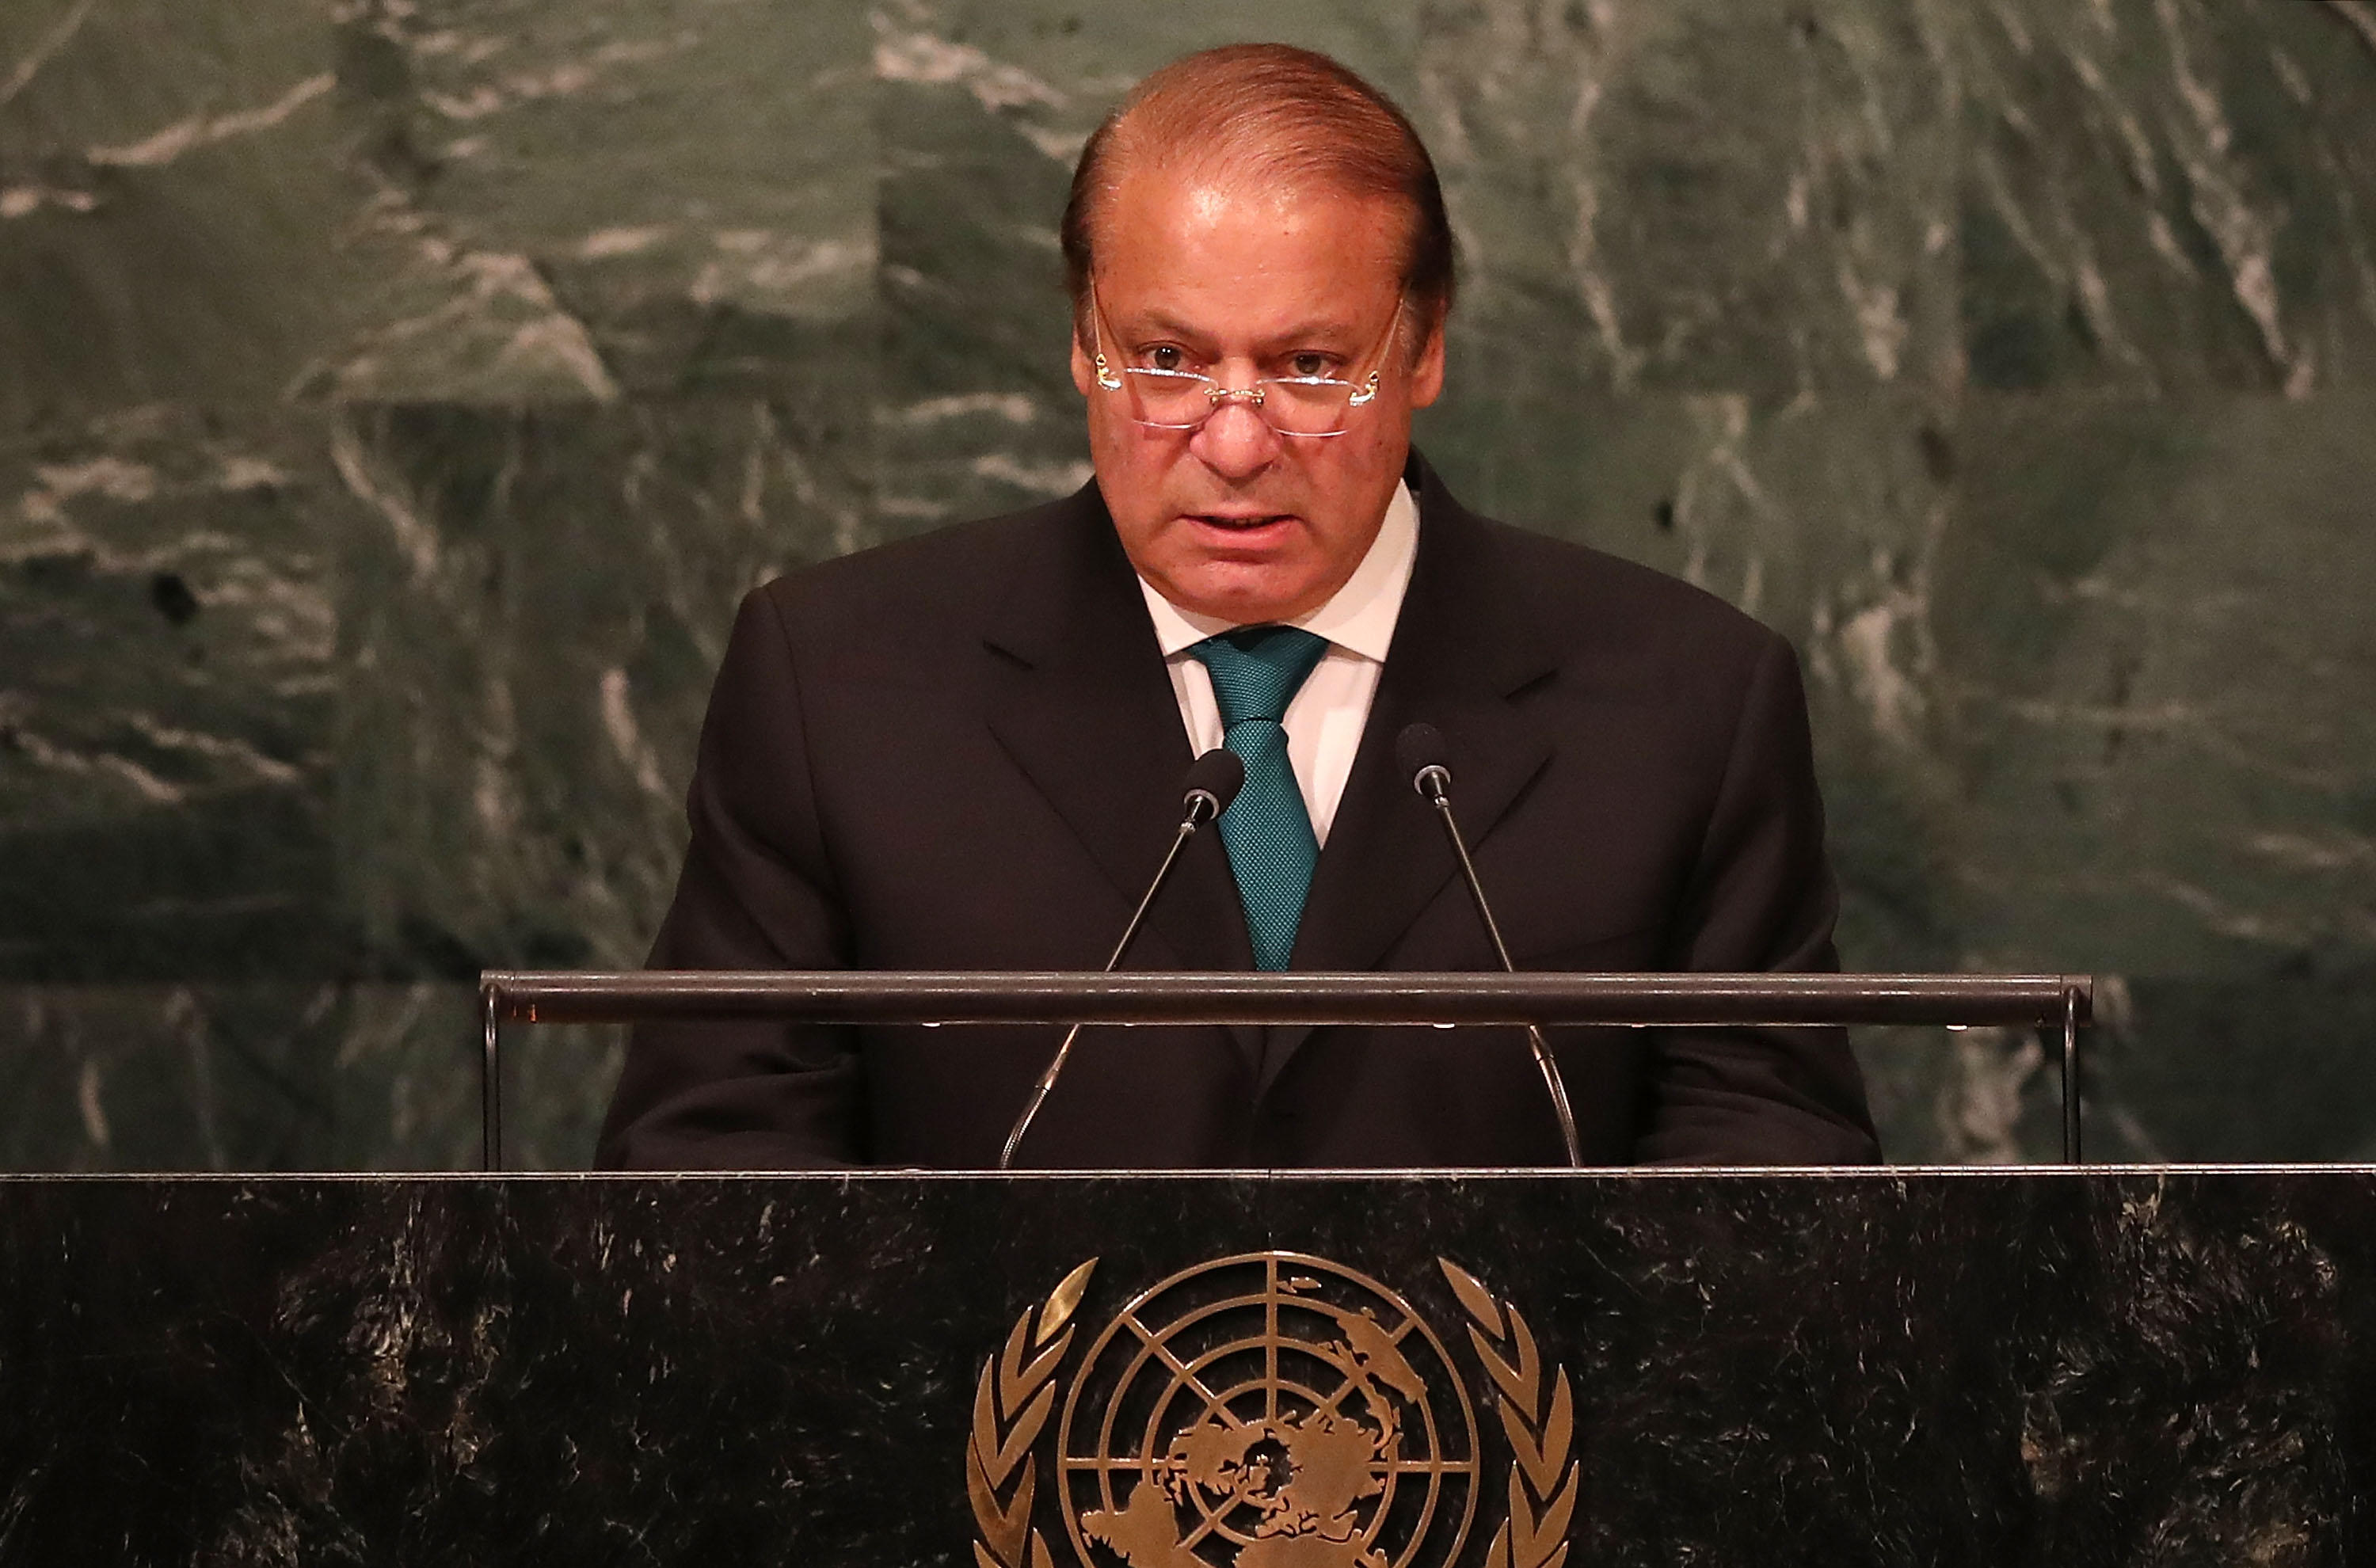 Pakistan's Prime Minister Nawaz Sharif addresses the U.N. General Assembly on Sept. 21, 2016, in New York City